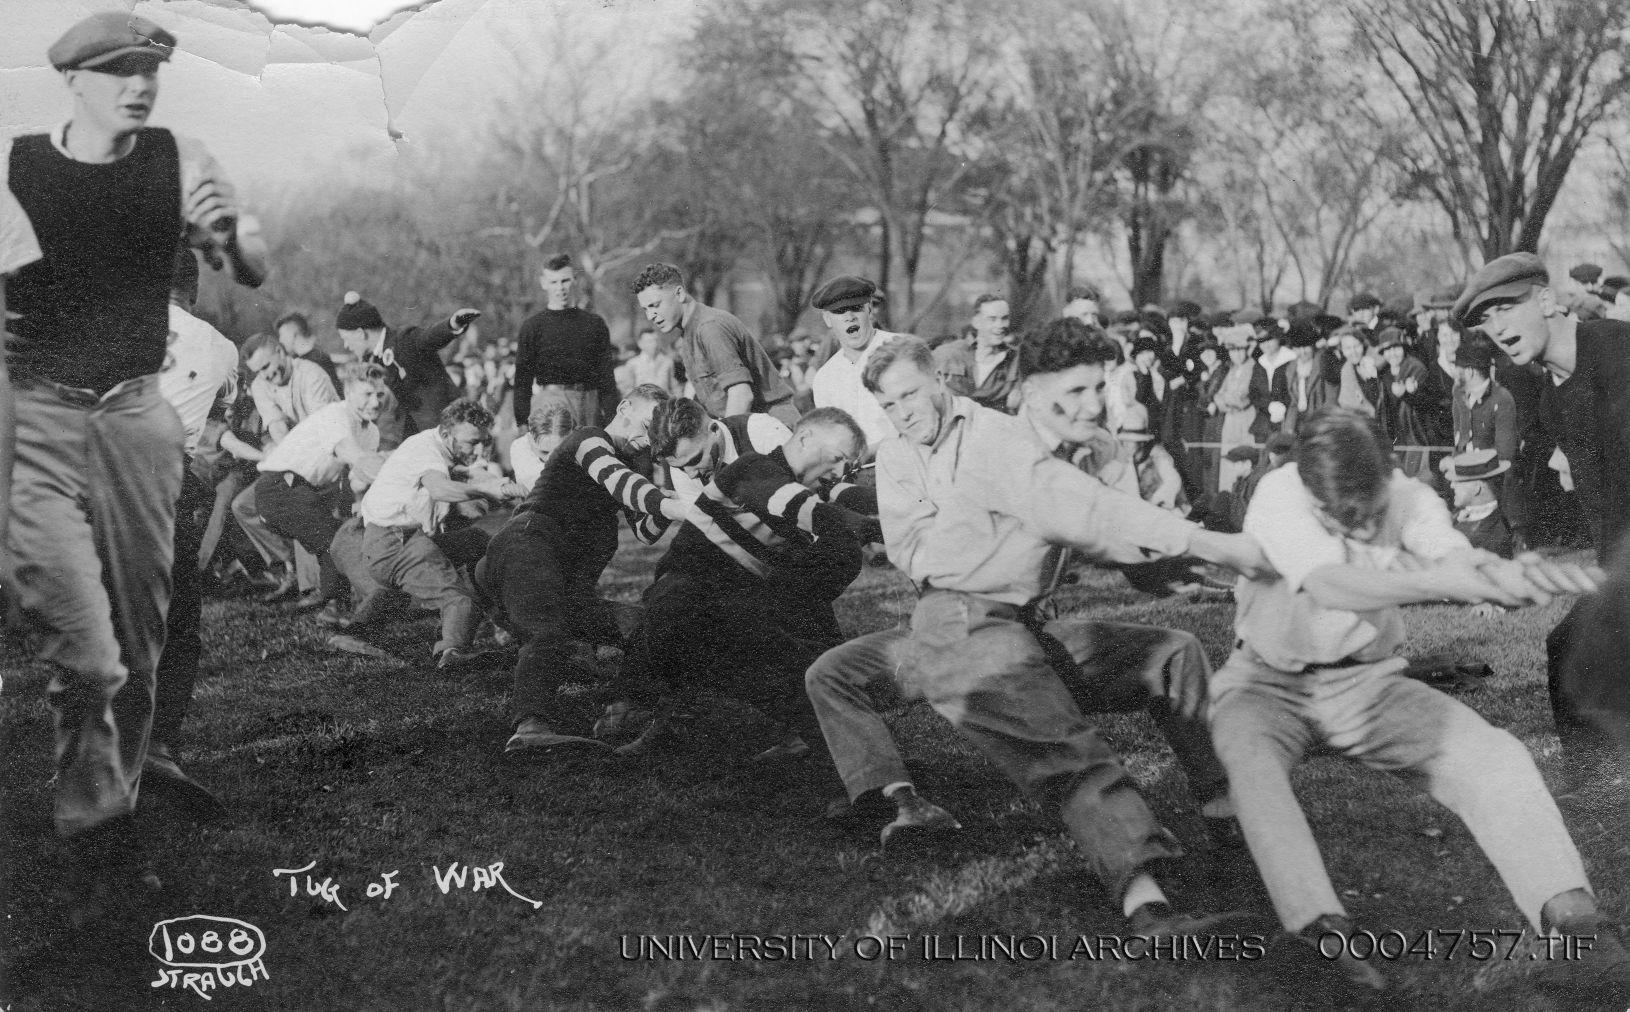 A+tug-of-war+battle+is+part+of+the+Homecoming+festivities+in+1919.